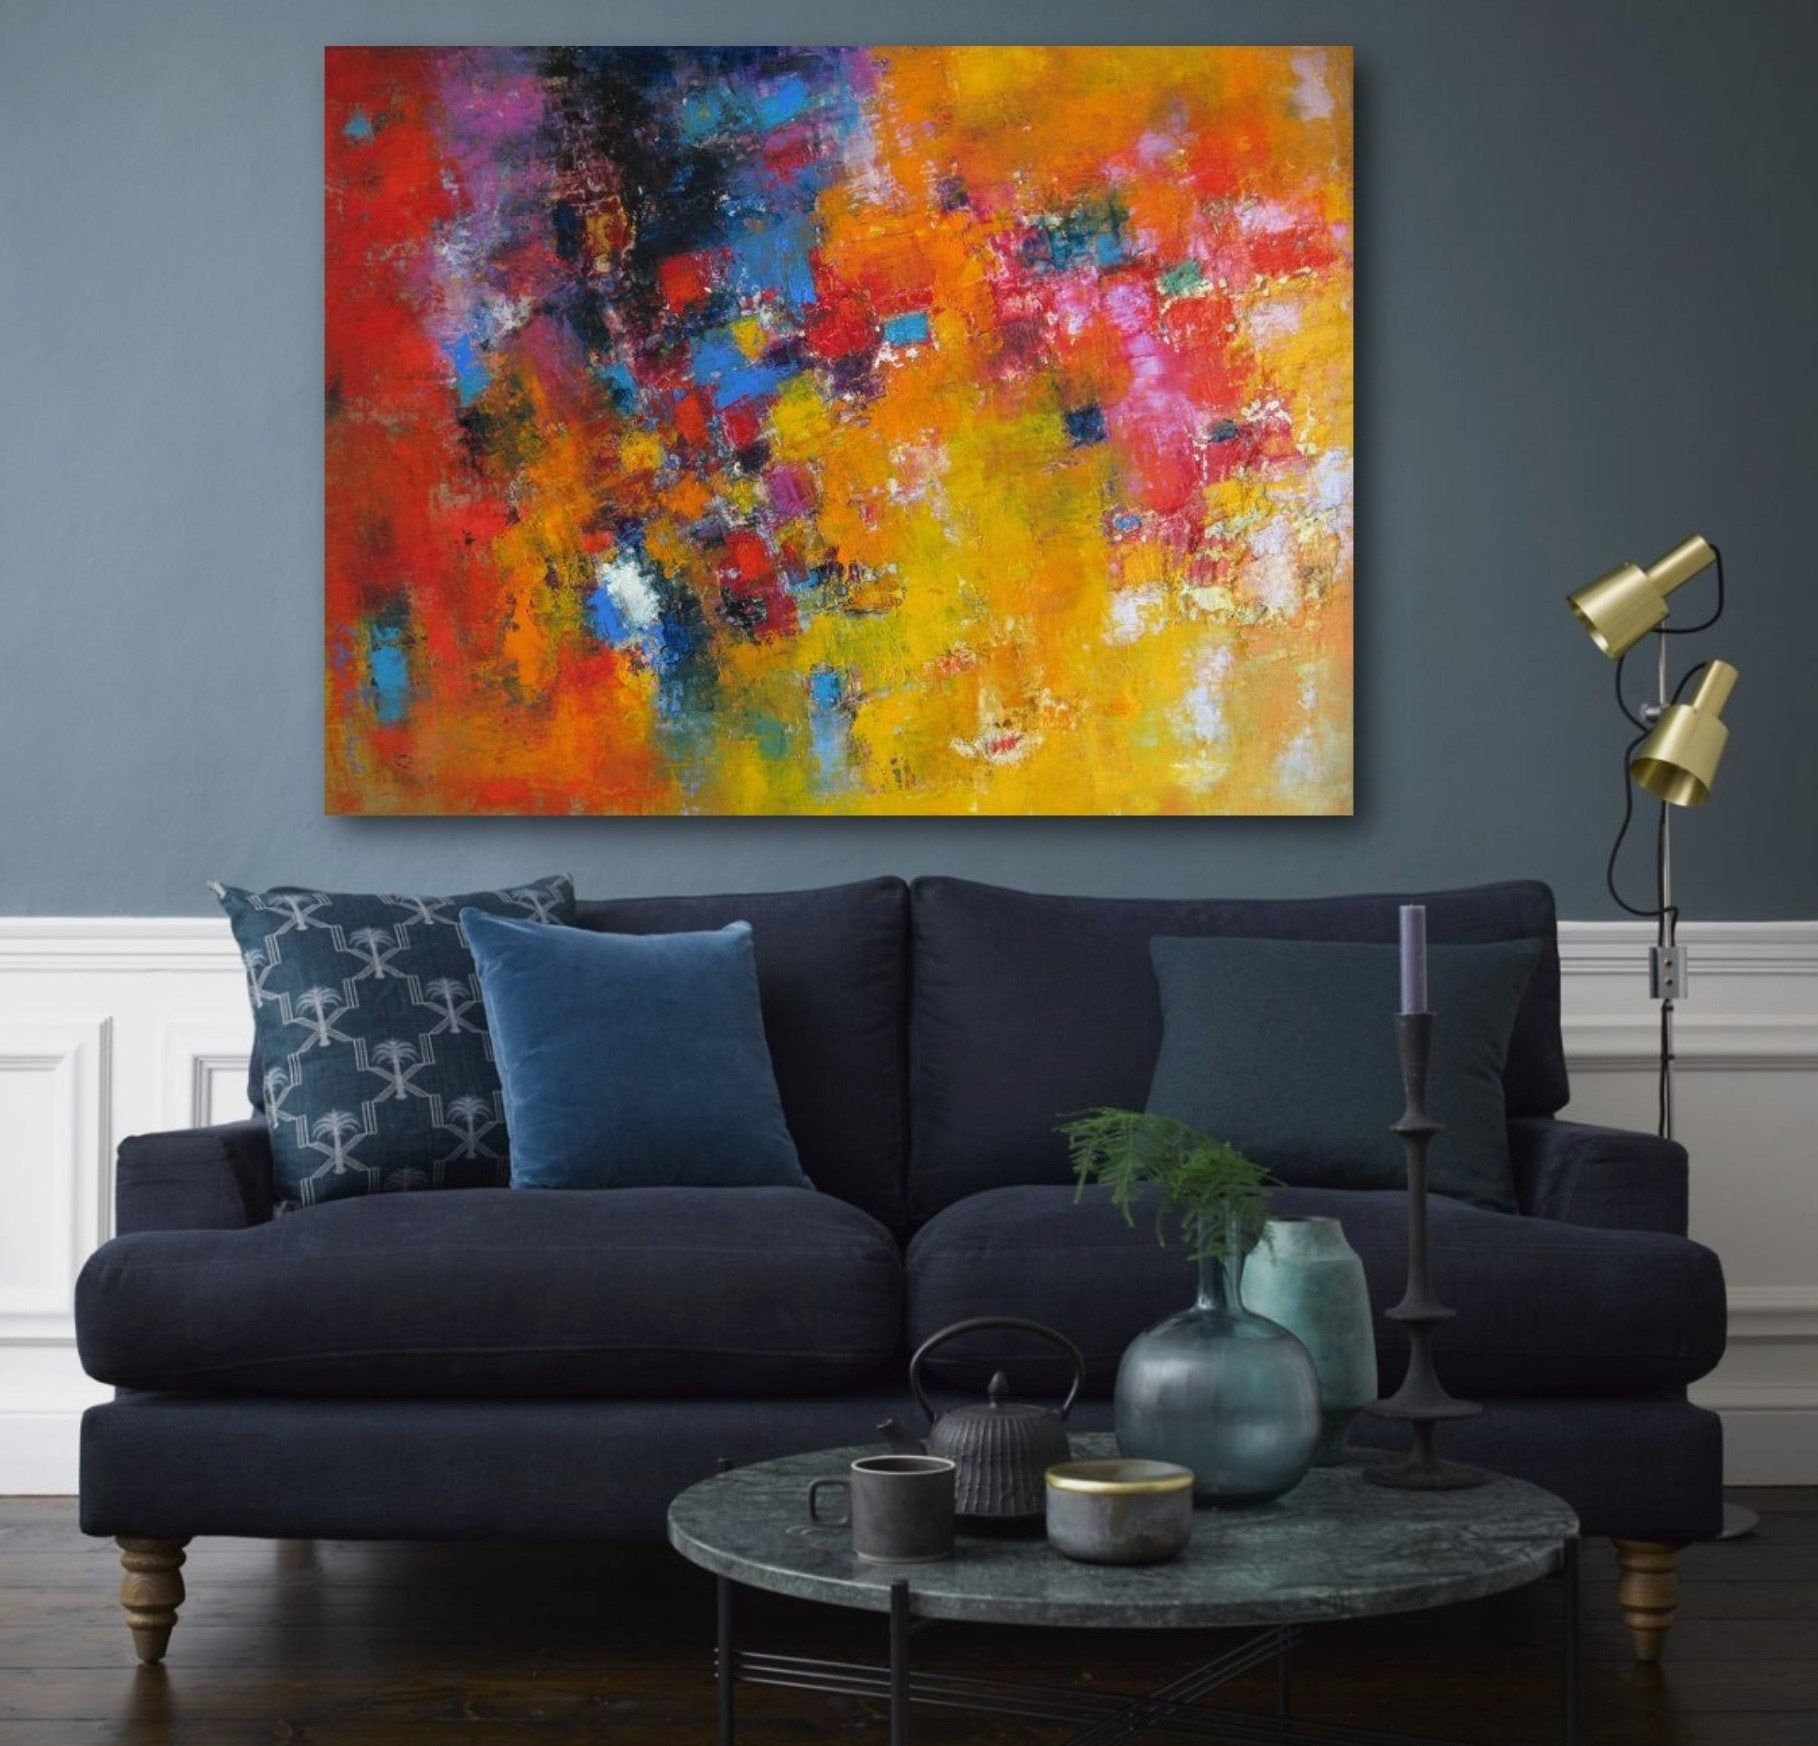 Original Abstract Art Canvas Extra Large Colorful Wall Art Oil Etsy Bright Abstract Art Colorful Wall Art Blue Abstract Wall Art